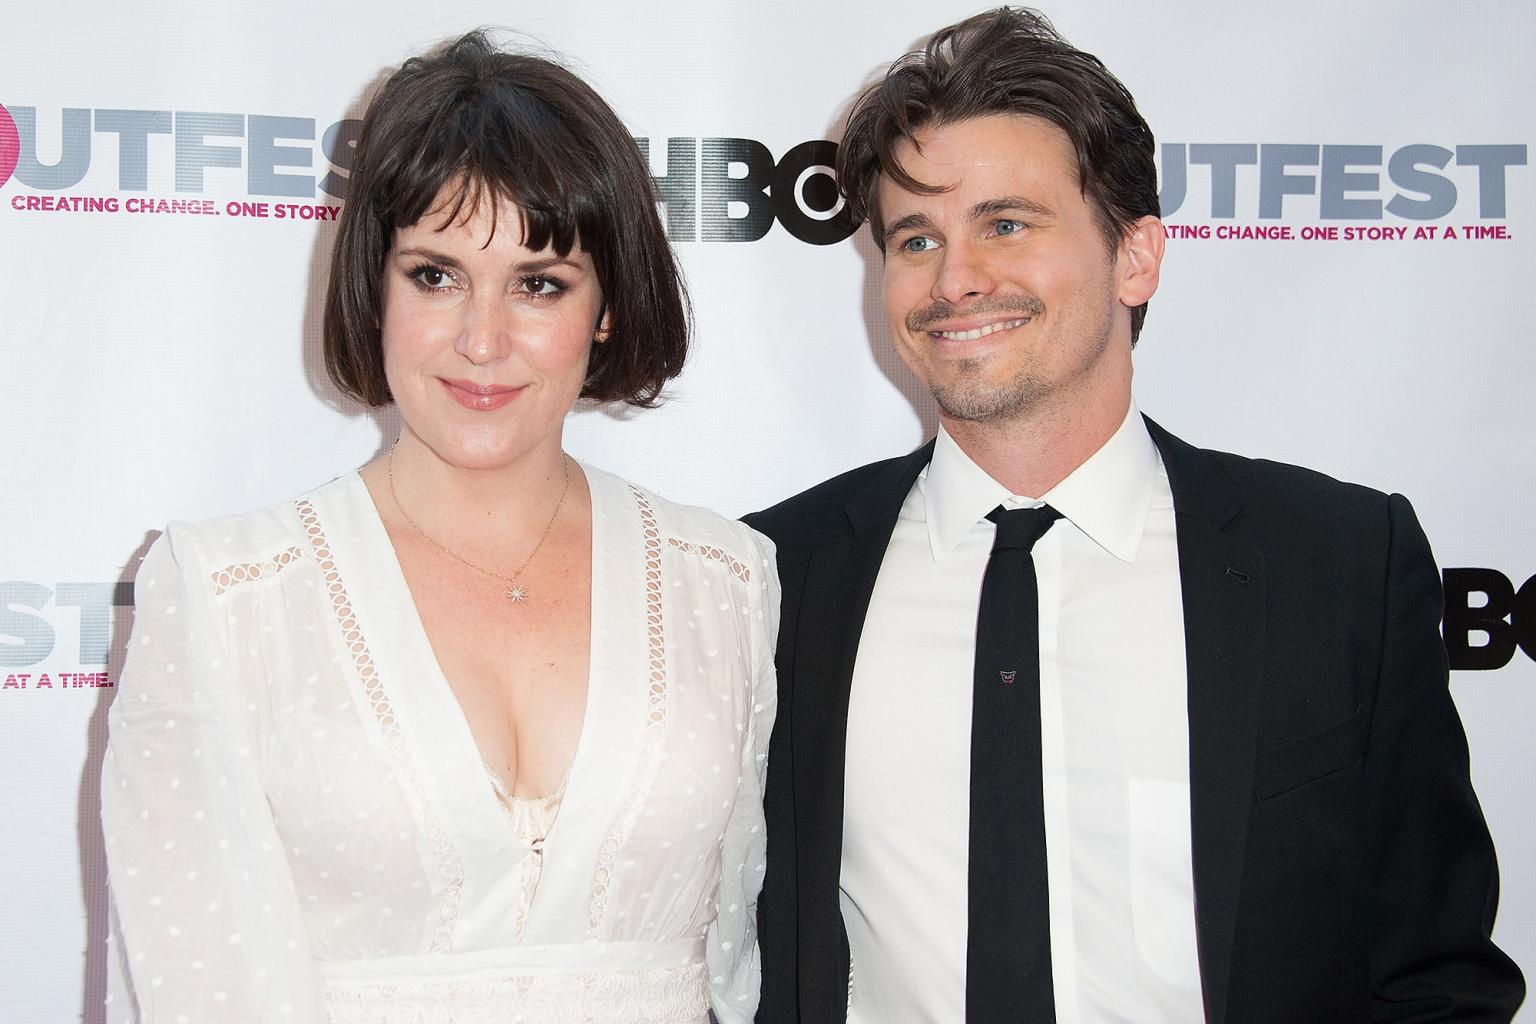 Jason Ritter and Melanie Lynskey Are Engaged!